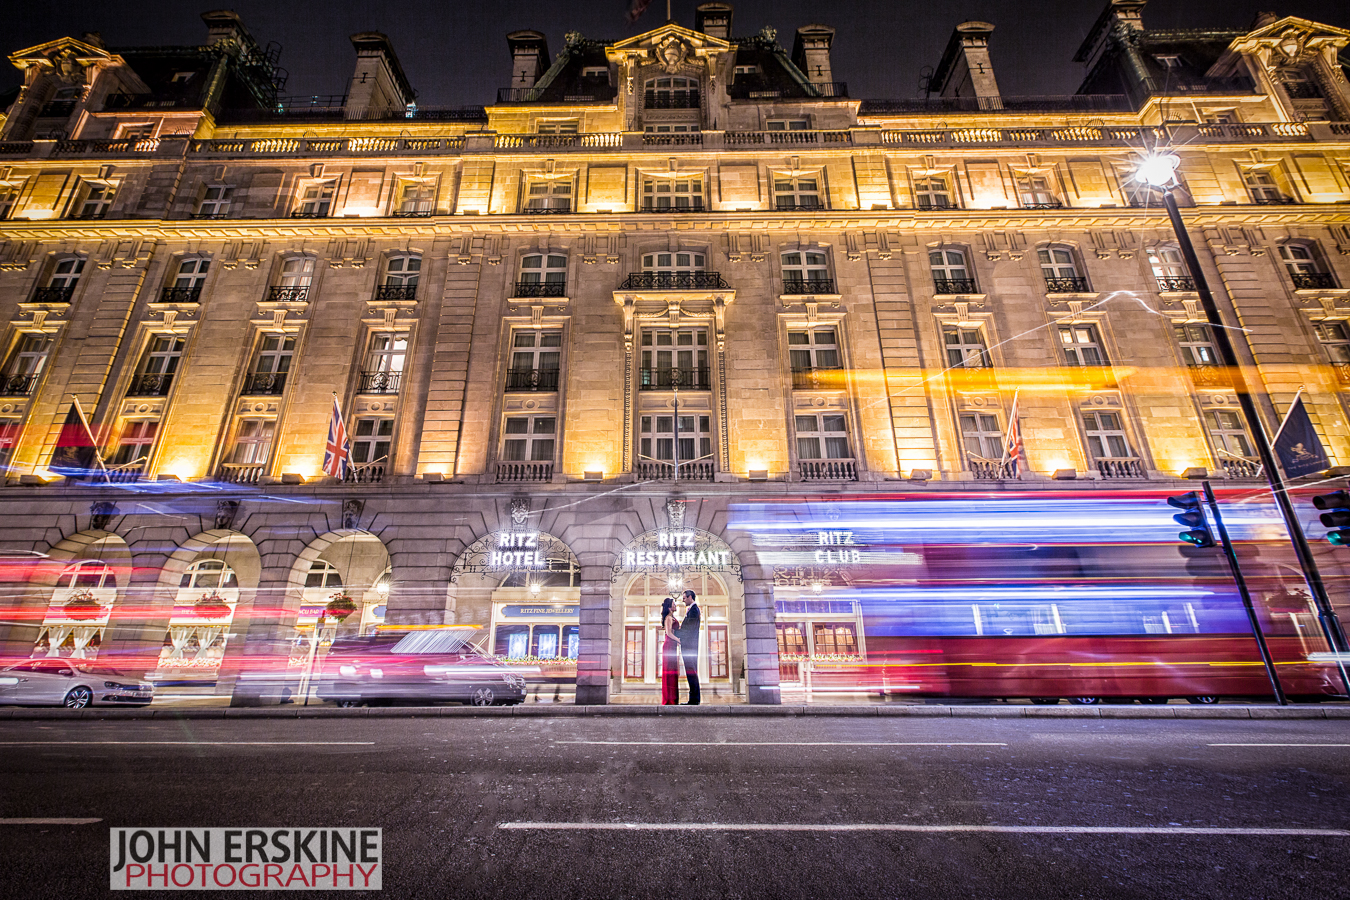 London Wedding Photography Prices - Ritz Wedding Bus